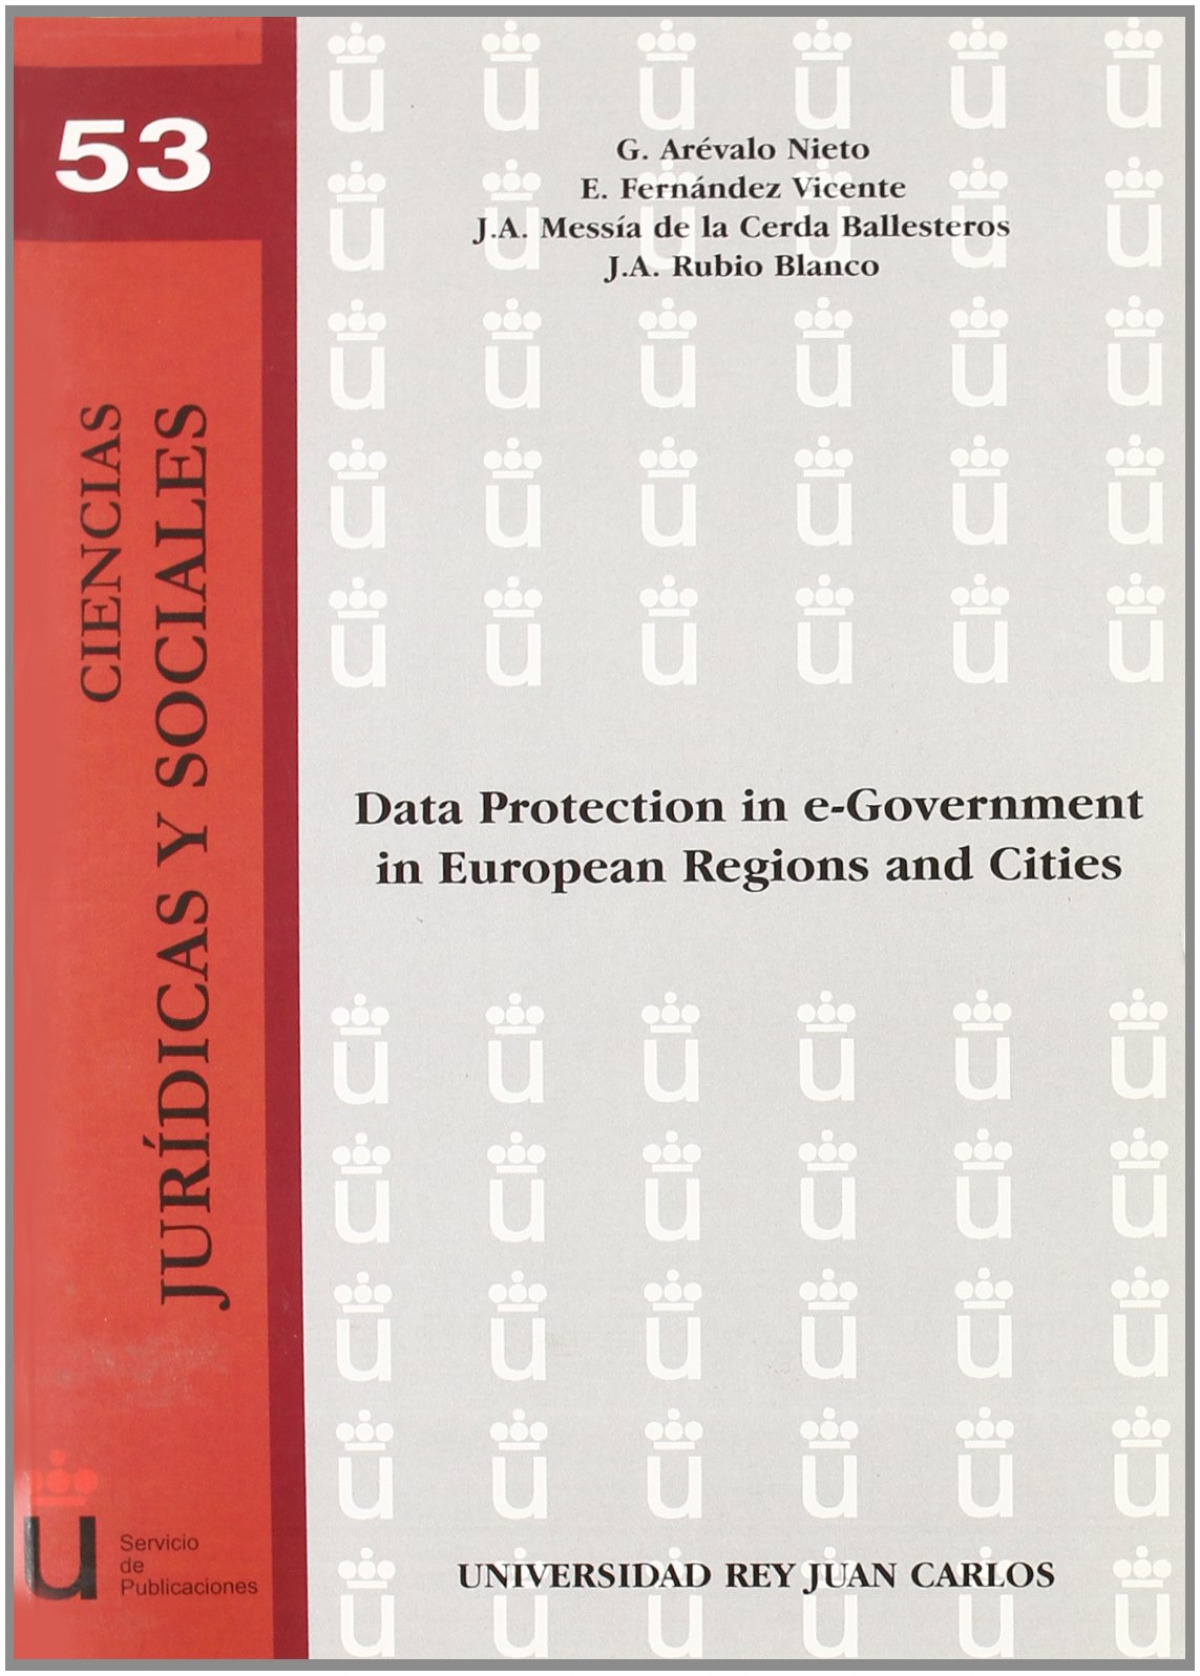 Data protection in e-Government in European Regions and Cities - Arévalo Nieto, G.